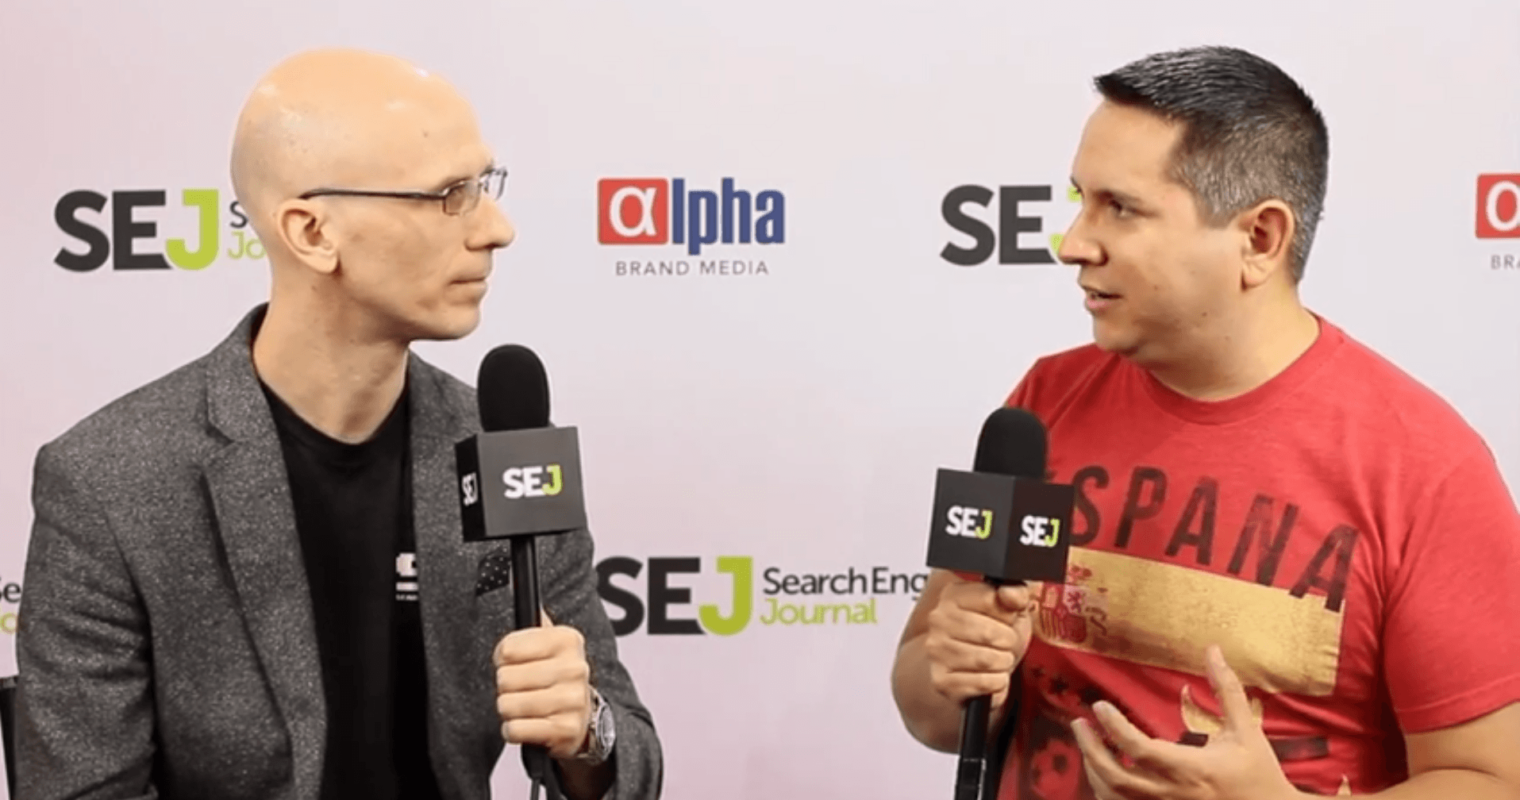 Step-By-Step SEO Strategy Development: An Interview With Steve Wiideman